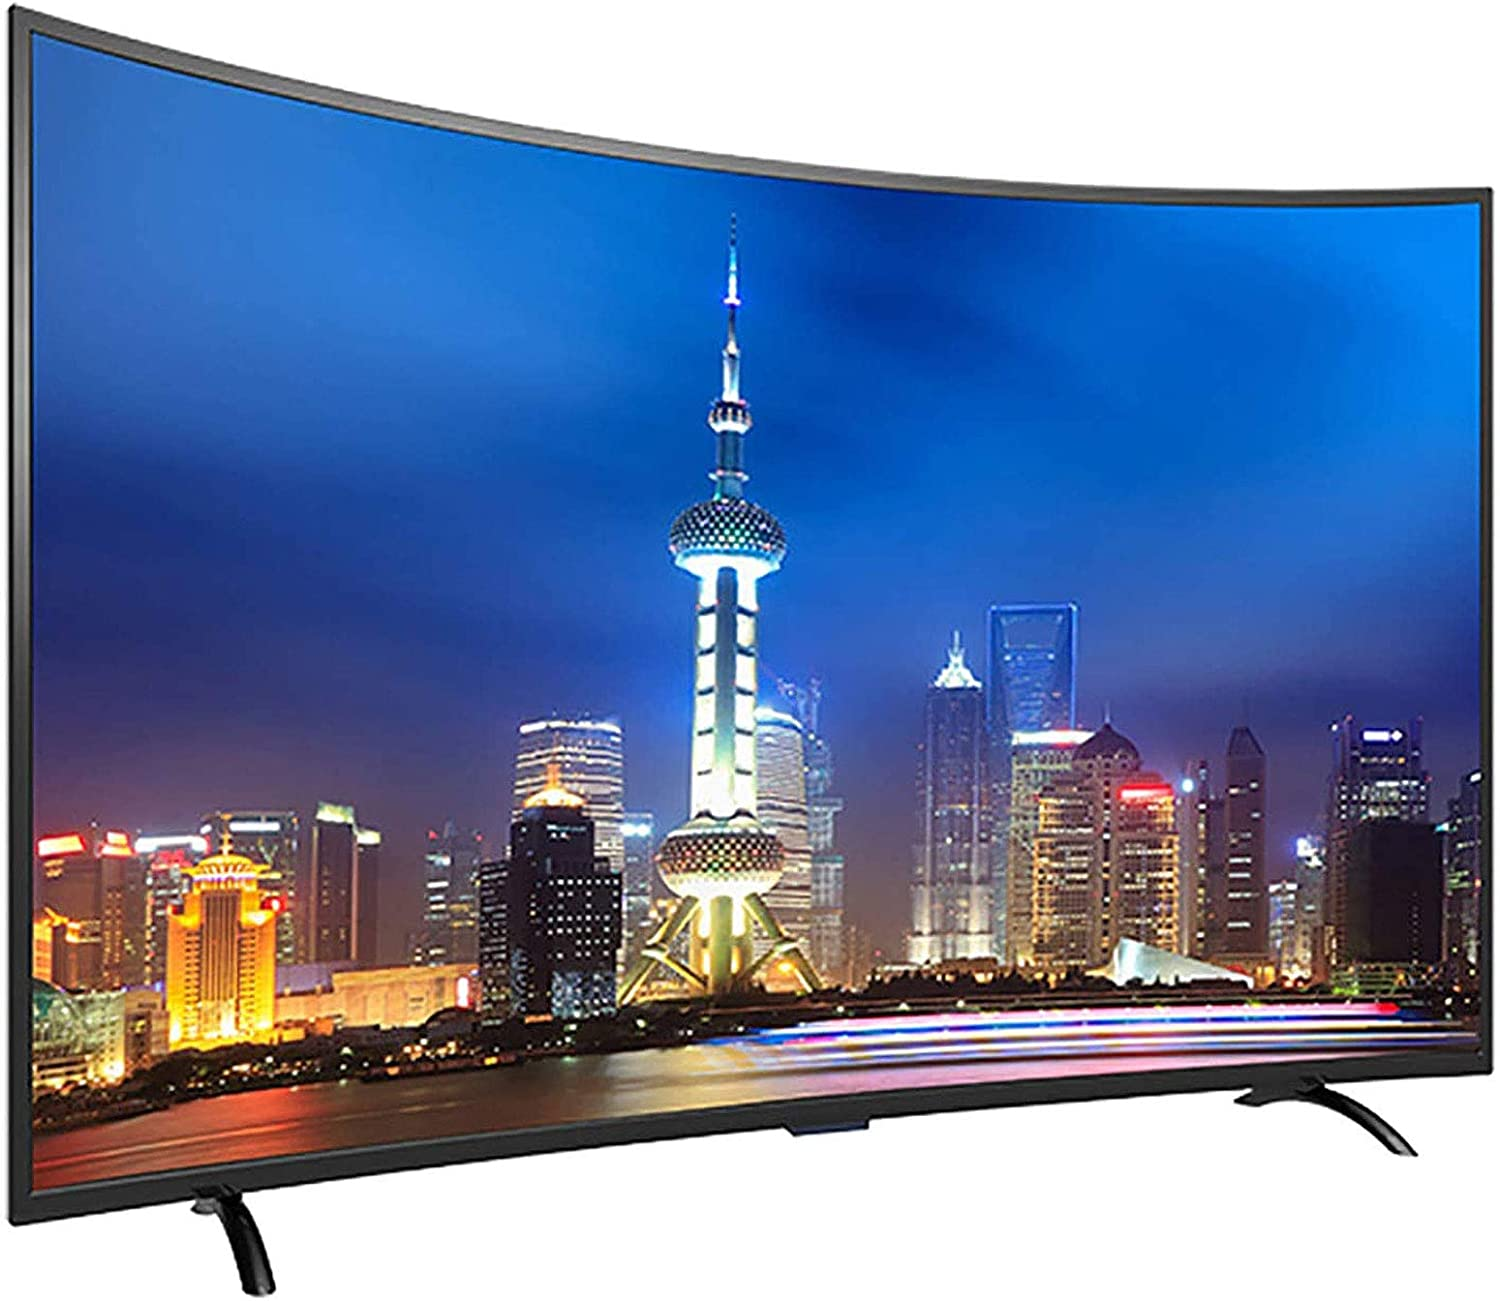 Curved TV, 55inch LED TV Smart Network TV Ultra Thin Body Suitable for All People